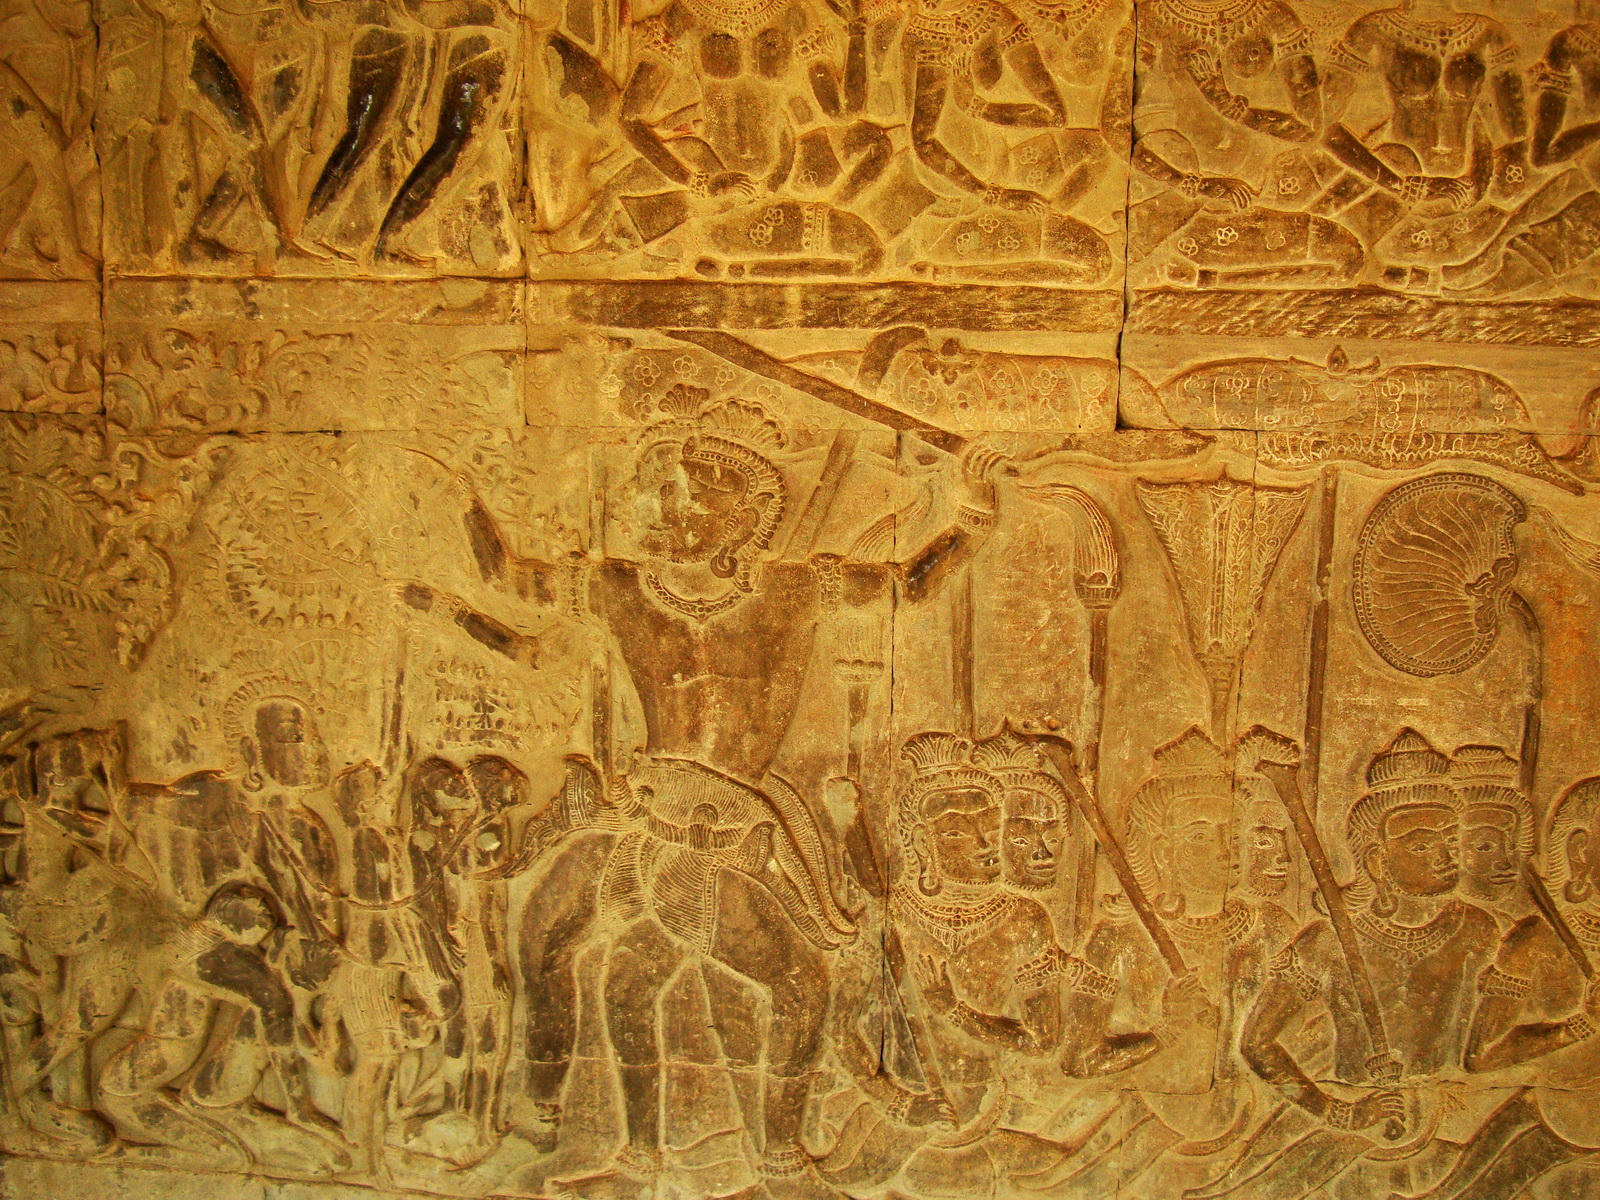 Angkor Wat Bas relief S Gallery E Wing Heavens and Hells 54